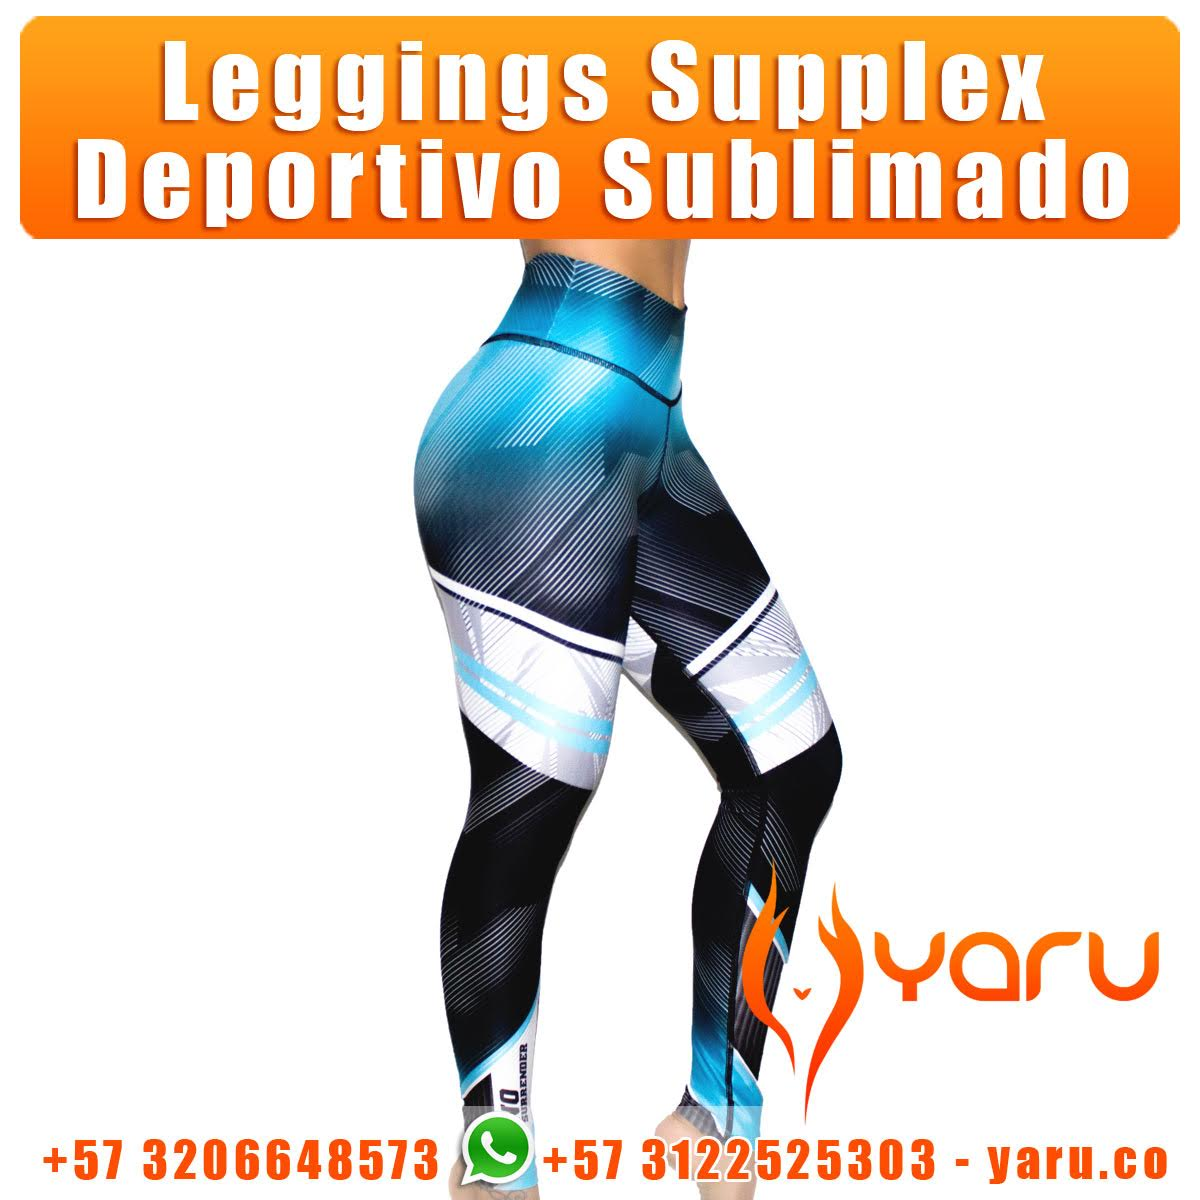 cd5870311a3dd leggins supplex deportivo colombiano pantalon supplex deportivo colombiano